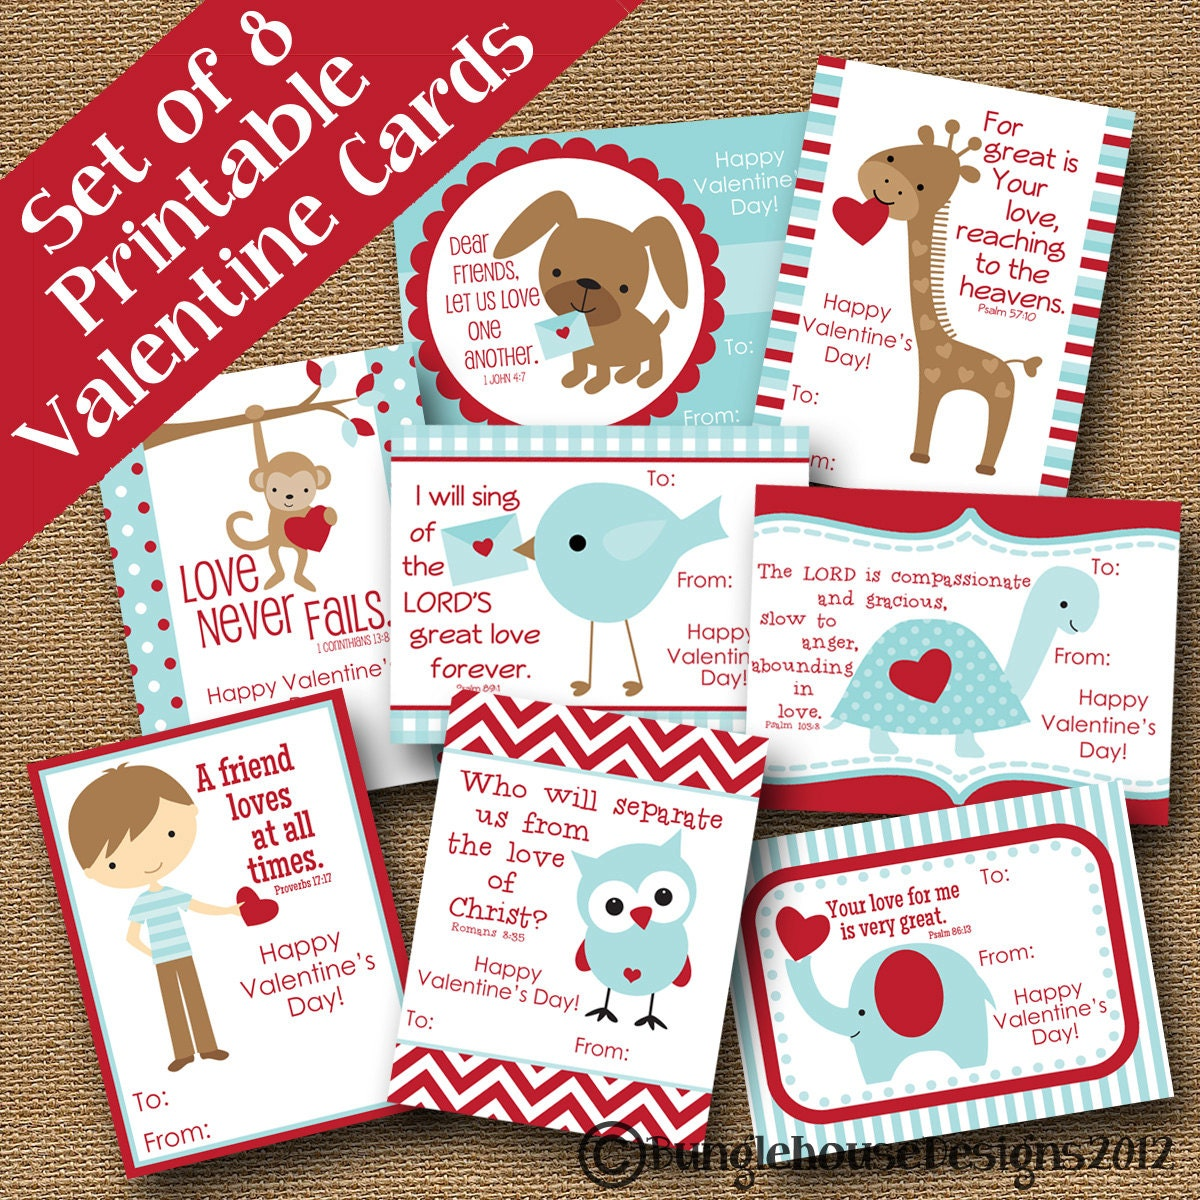 This is a photo of Playful Printable Childrens Valentines Cards